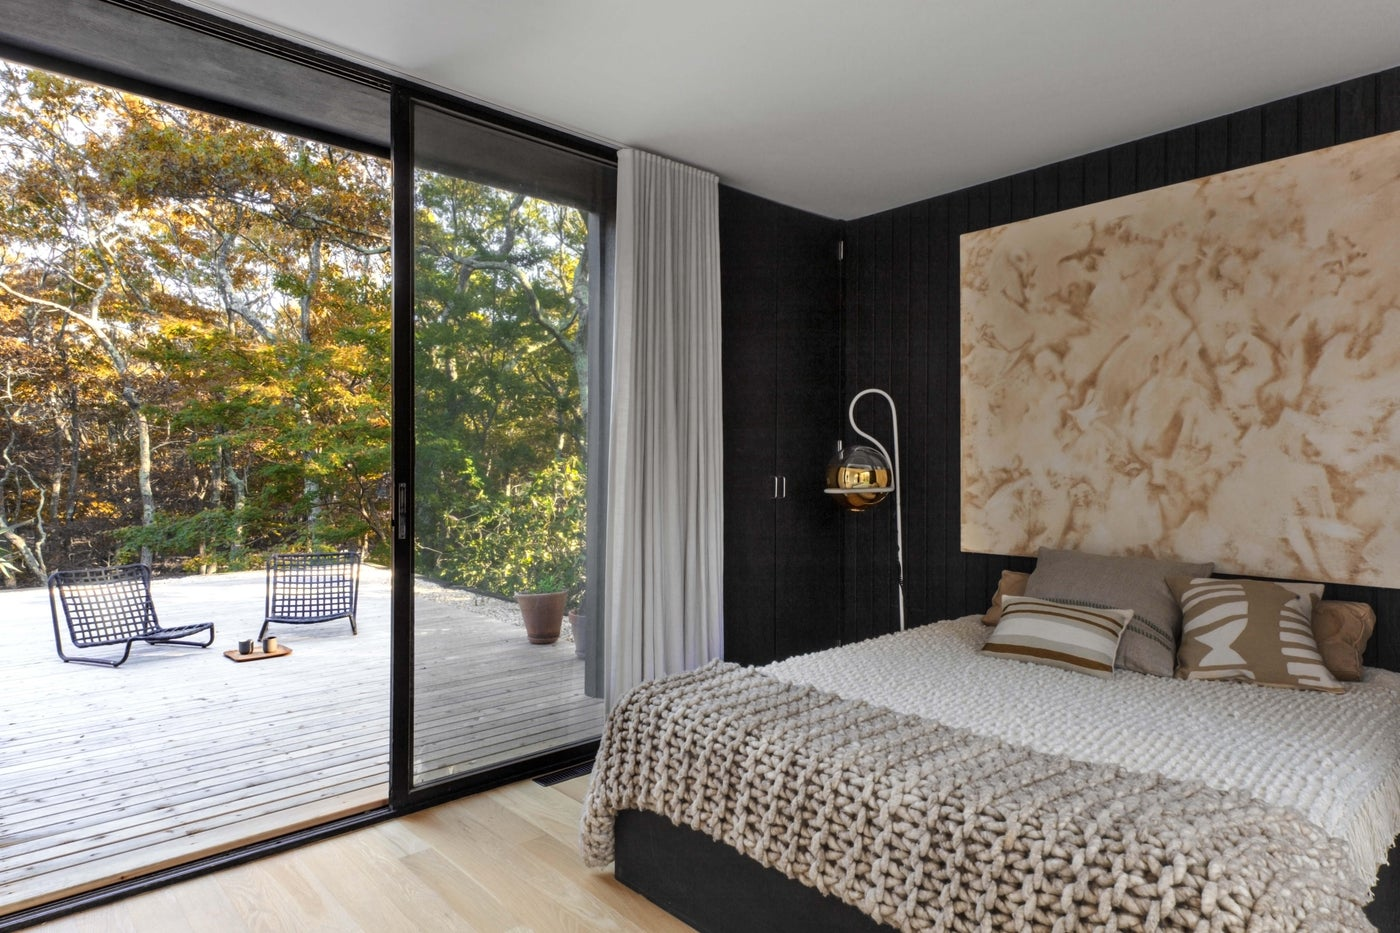 Modern bedroom with warm accents, glass wall overlooking outdoor patio